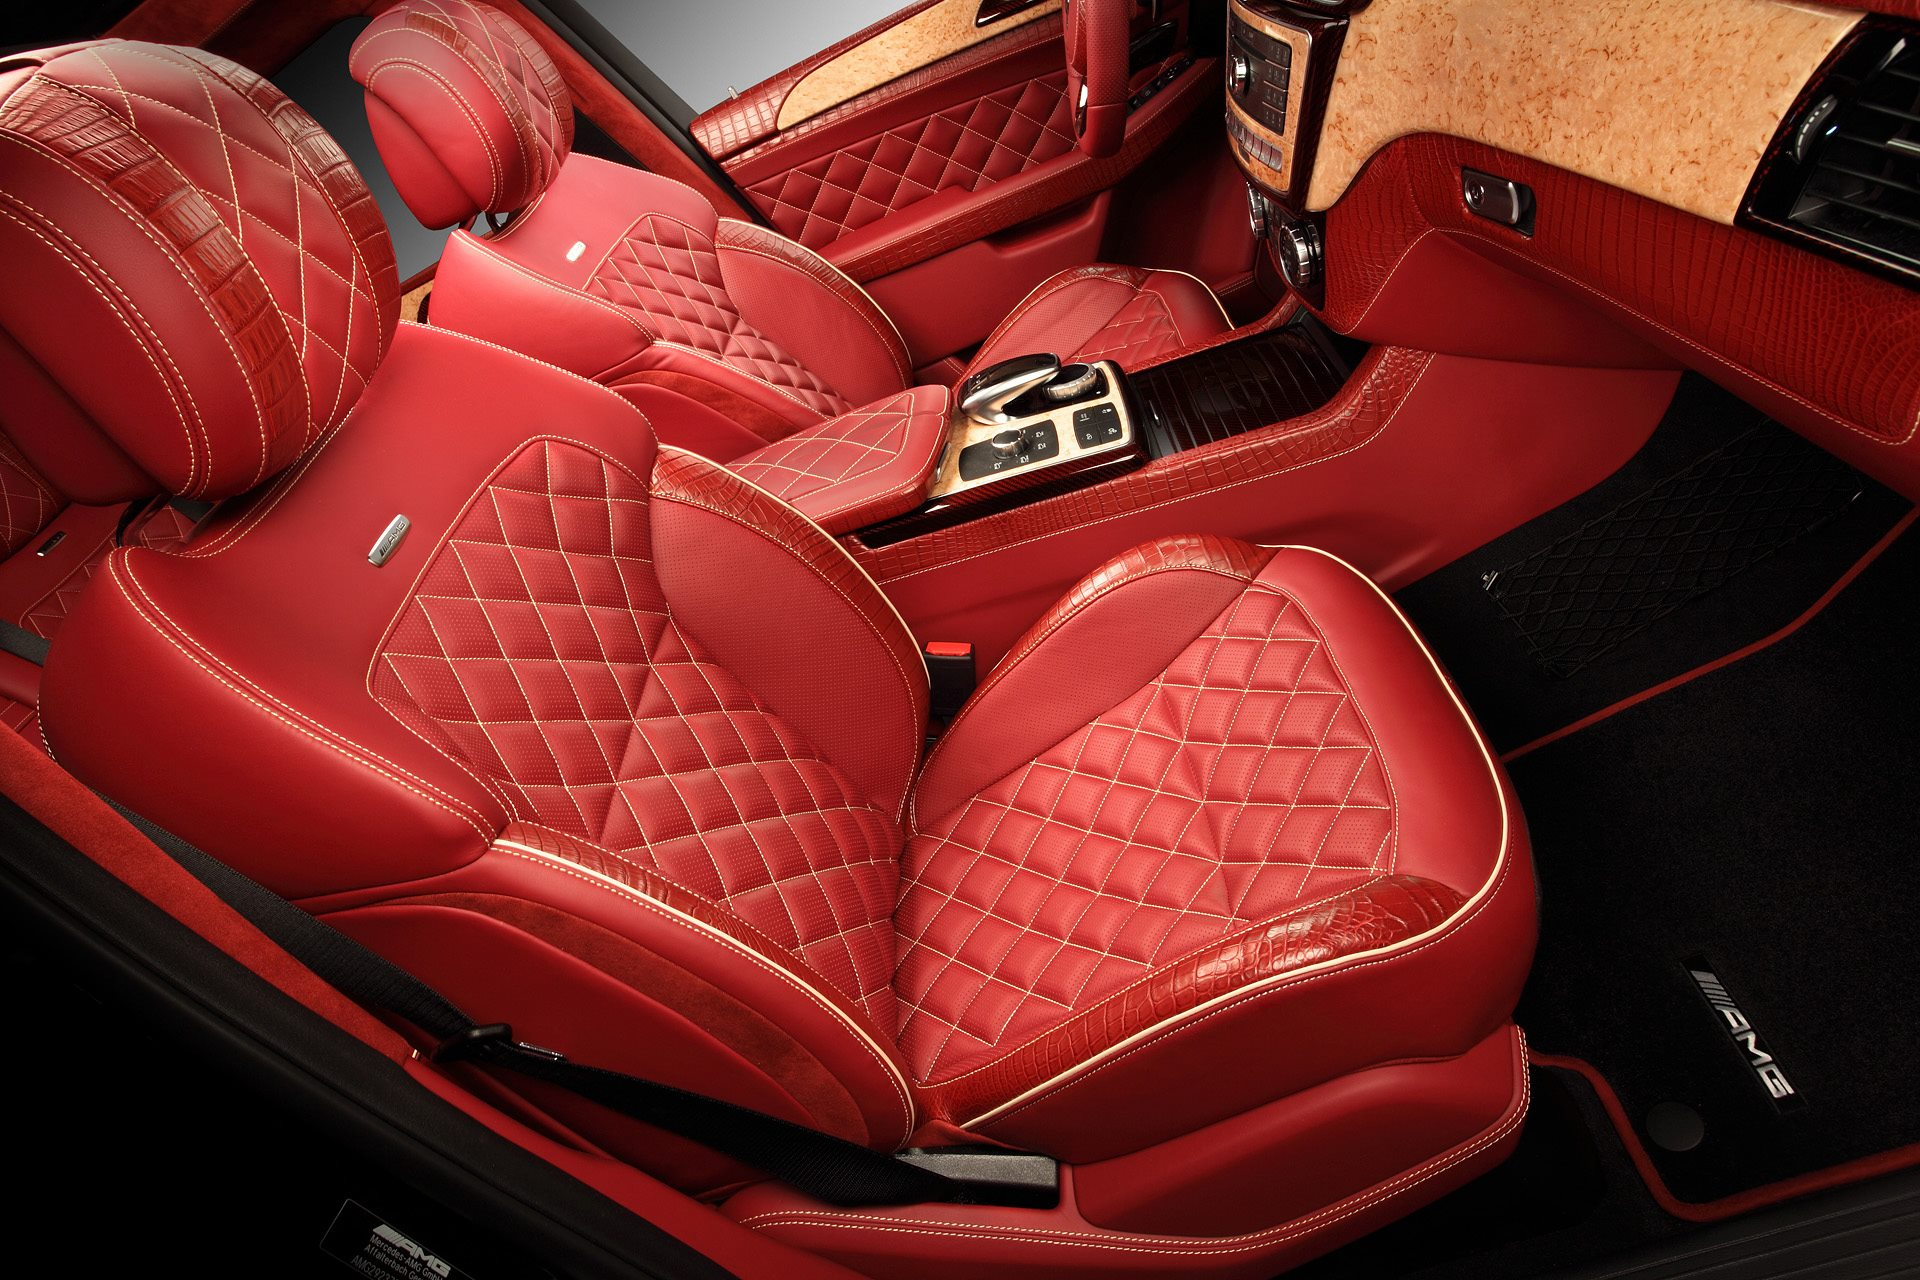 Gle Coupe Gets Red Carbon And Crocodile Leather Interior